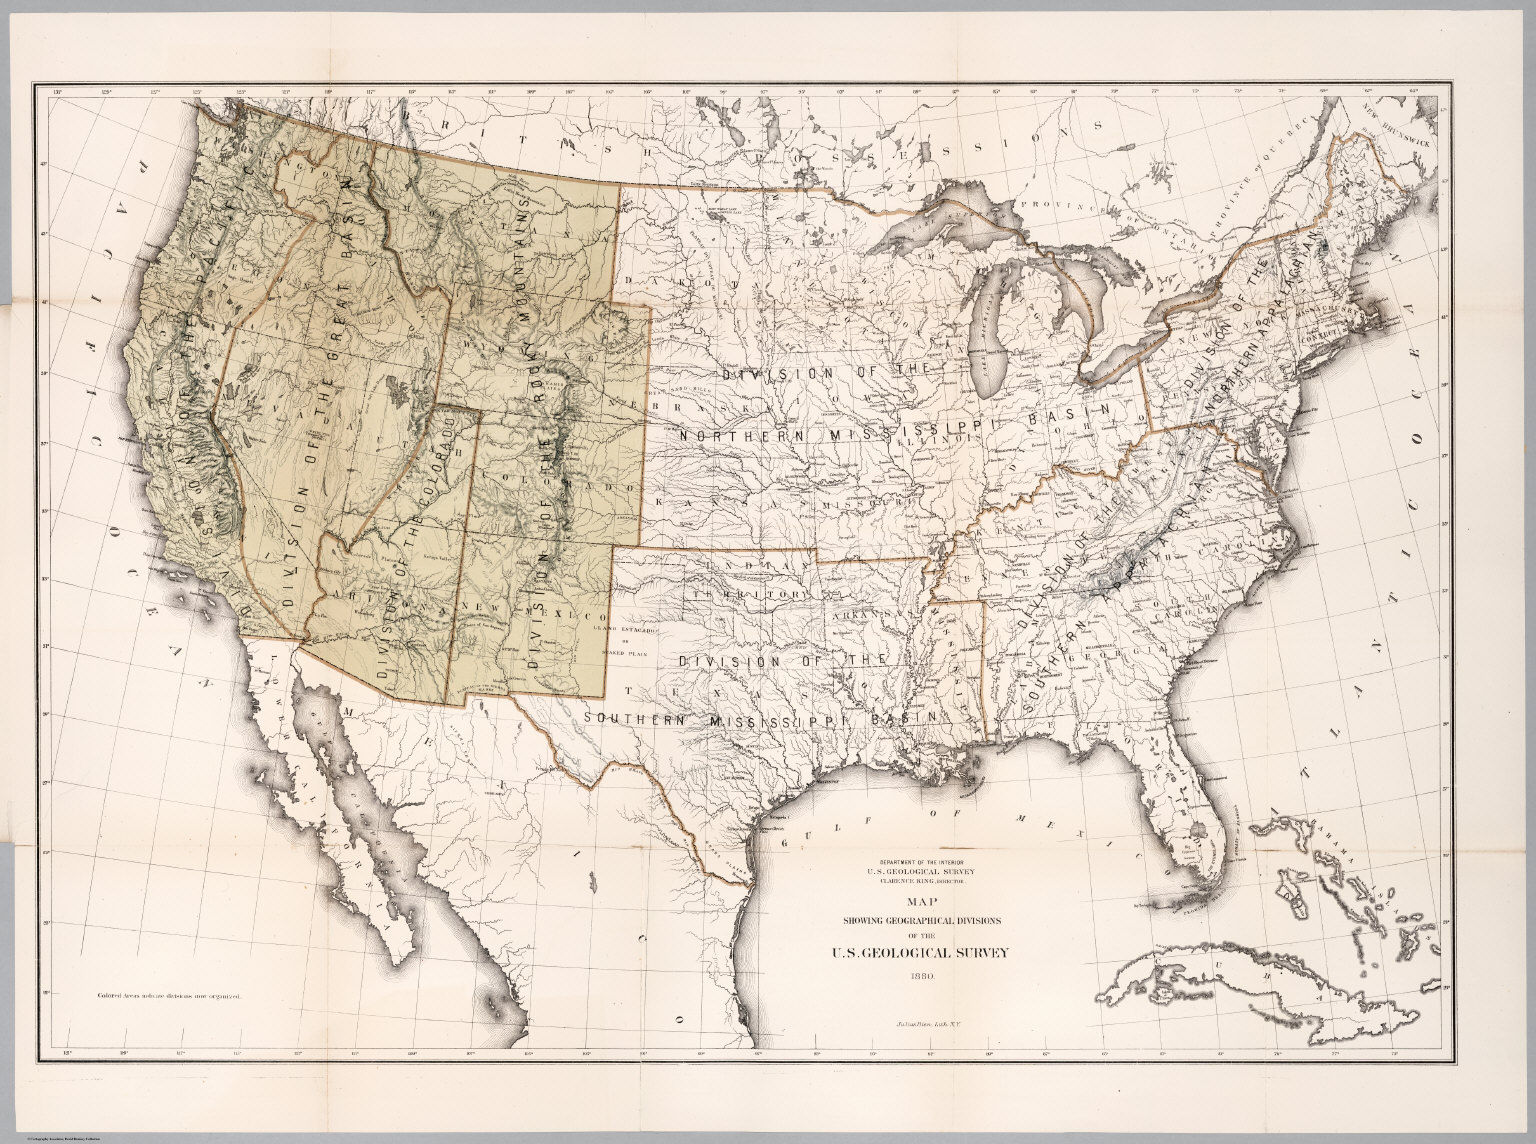 Map Showing Geographical Divisions Of The Us Geological Survey - 1880-map-of-us